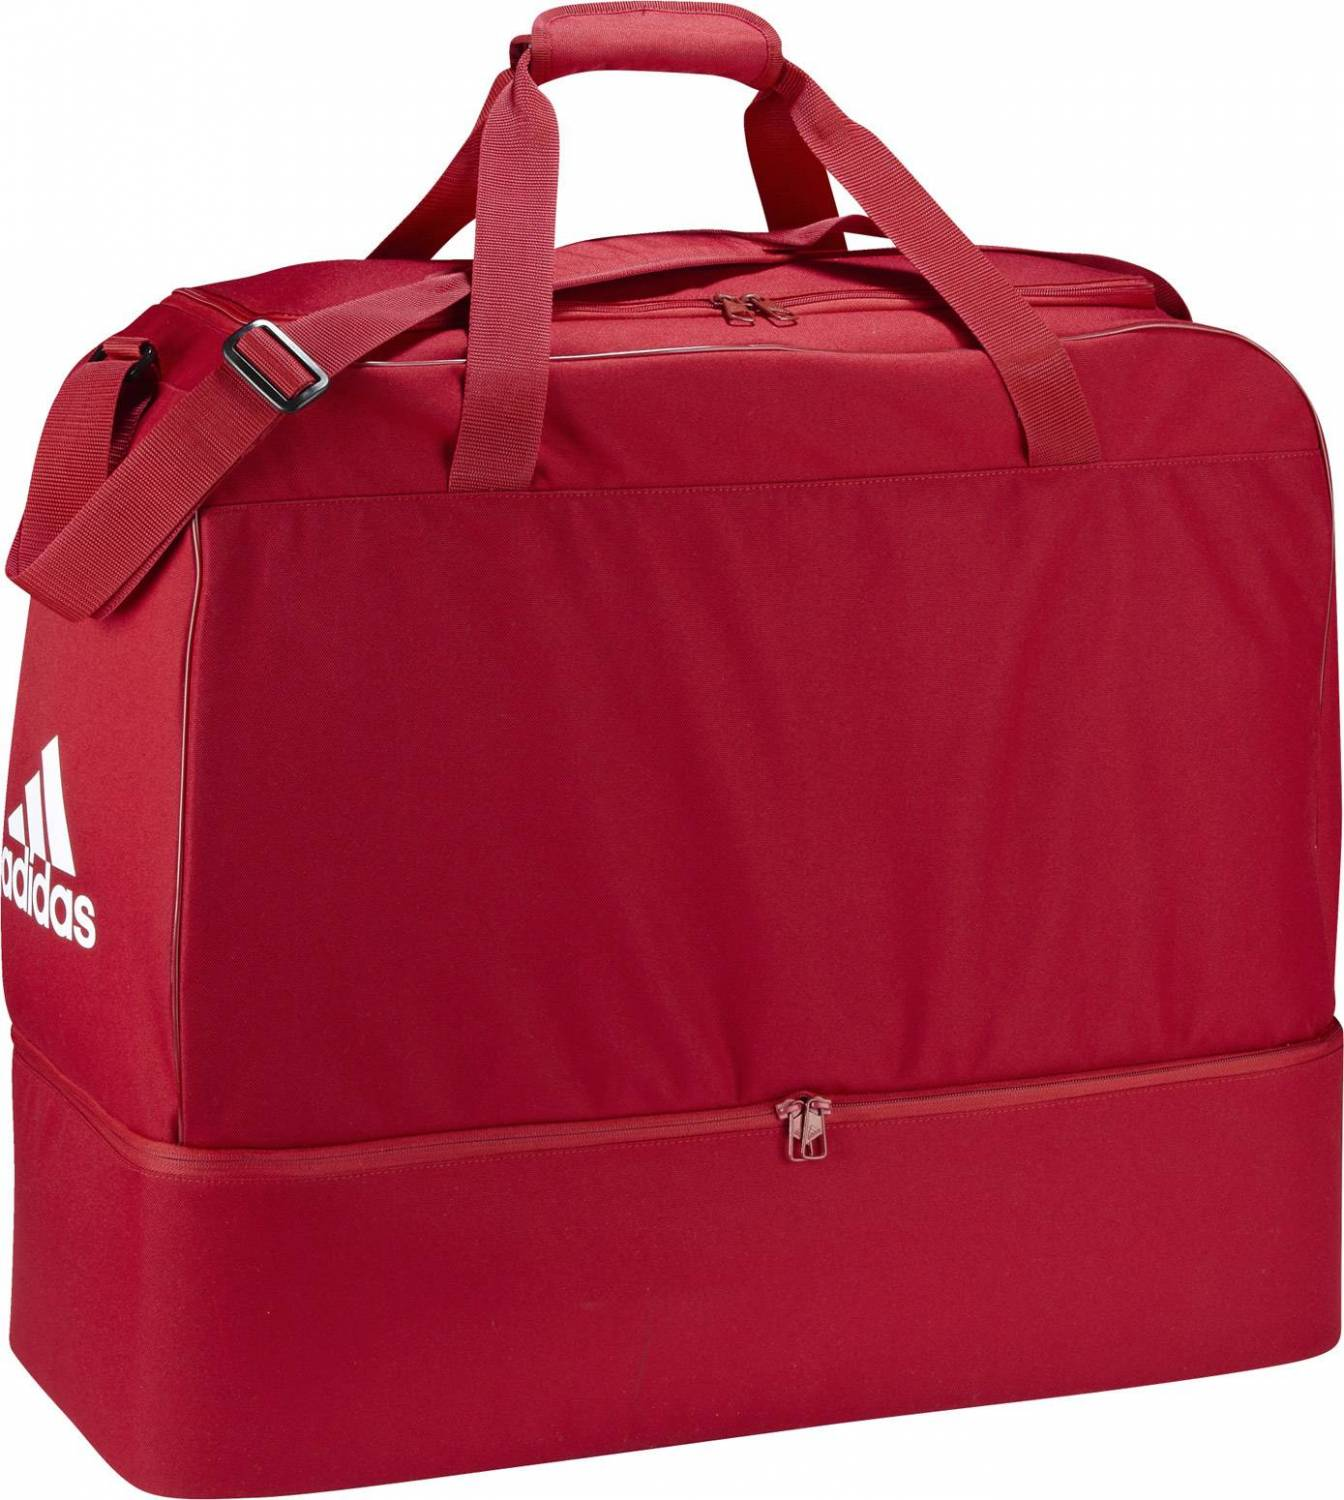 adidas Teambag With Bottom Compartment (Farbe: power red/white)